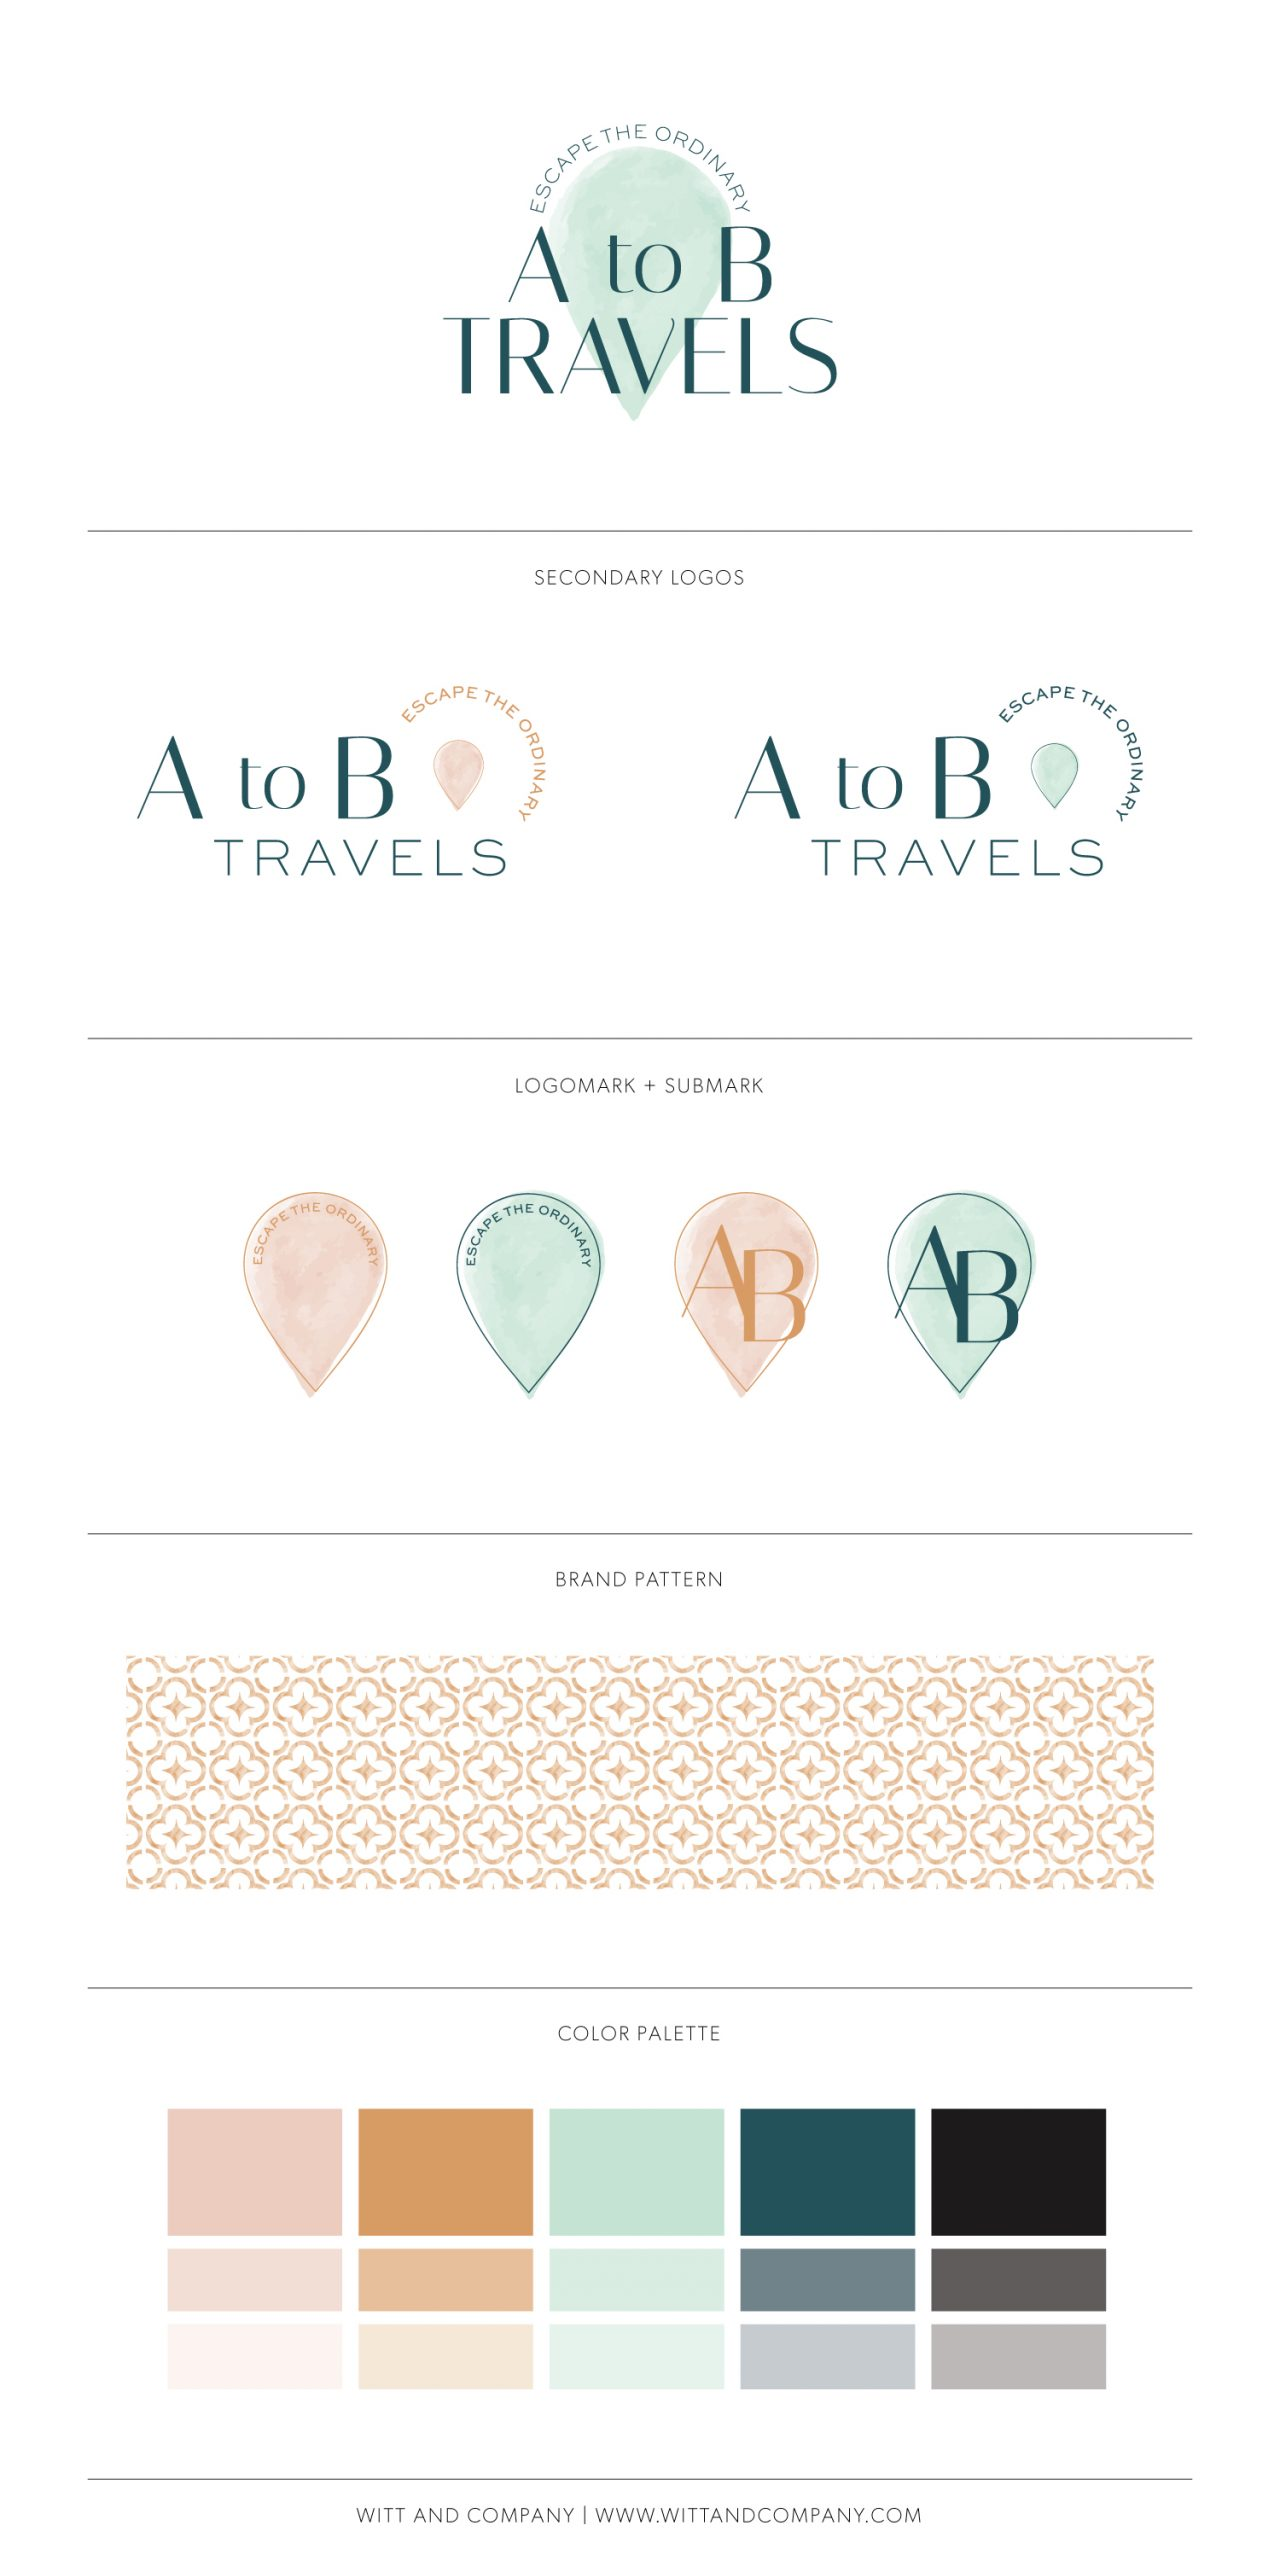 A to B Travel style guide